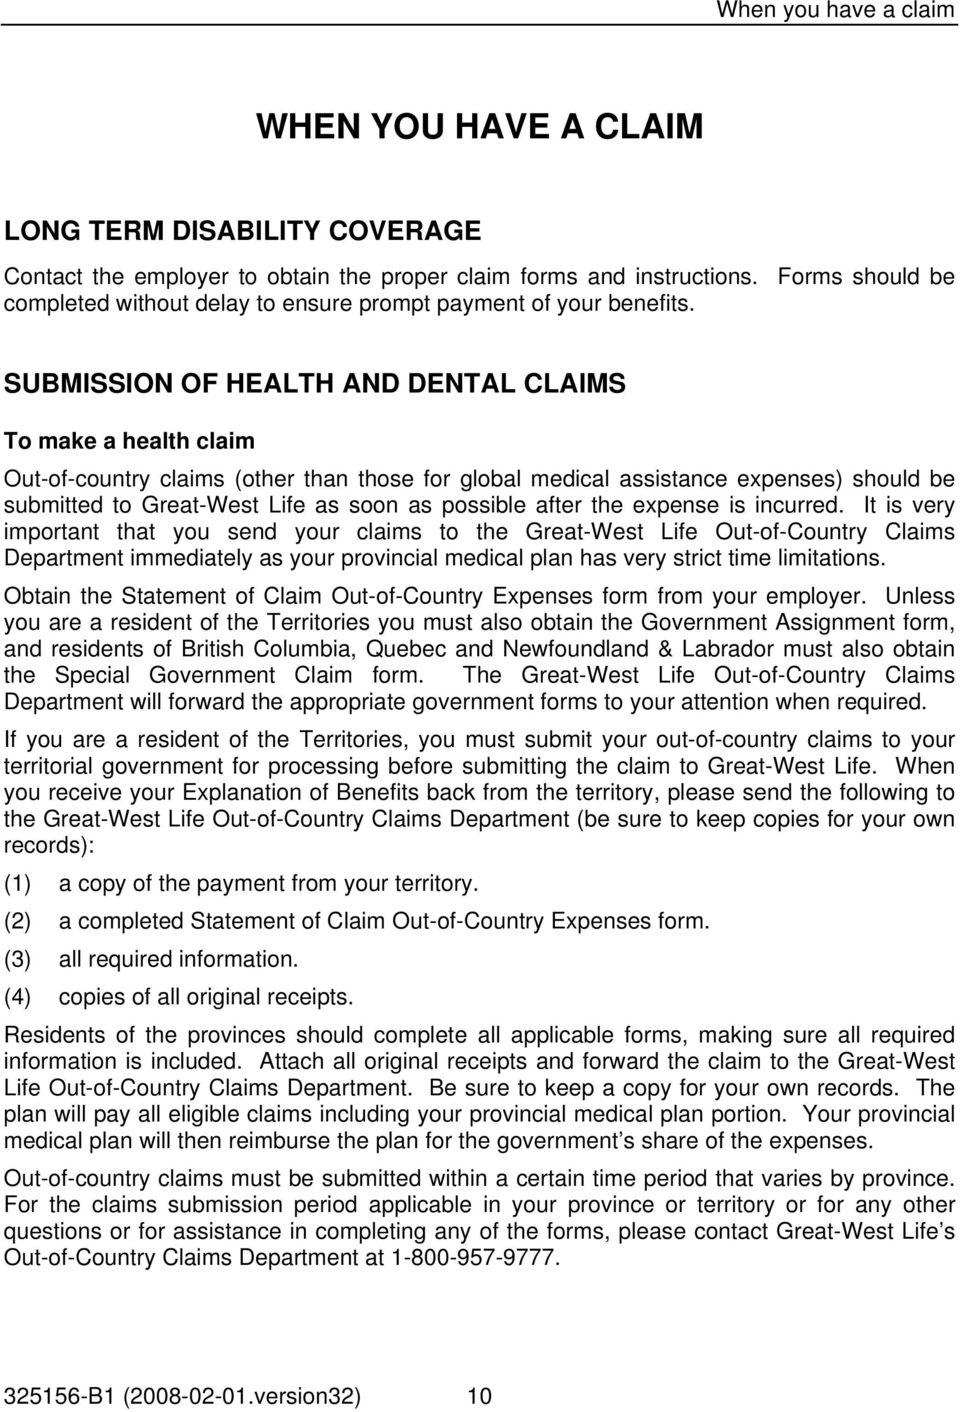 SUBMISSION OF HEALTH AND DENTAL CLAIMS To make a health claim Out-of-country claims (other than those for global medical assistance expenses) should be submitted to Great-West Life as soon as